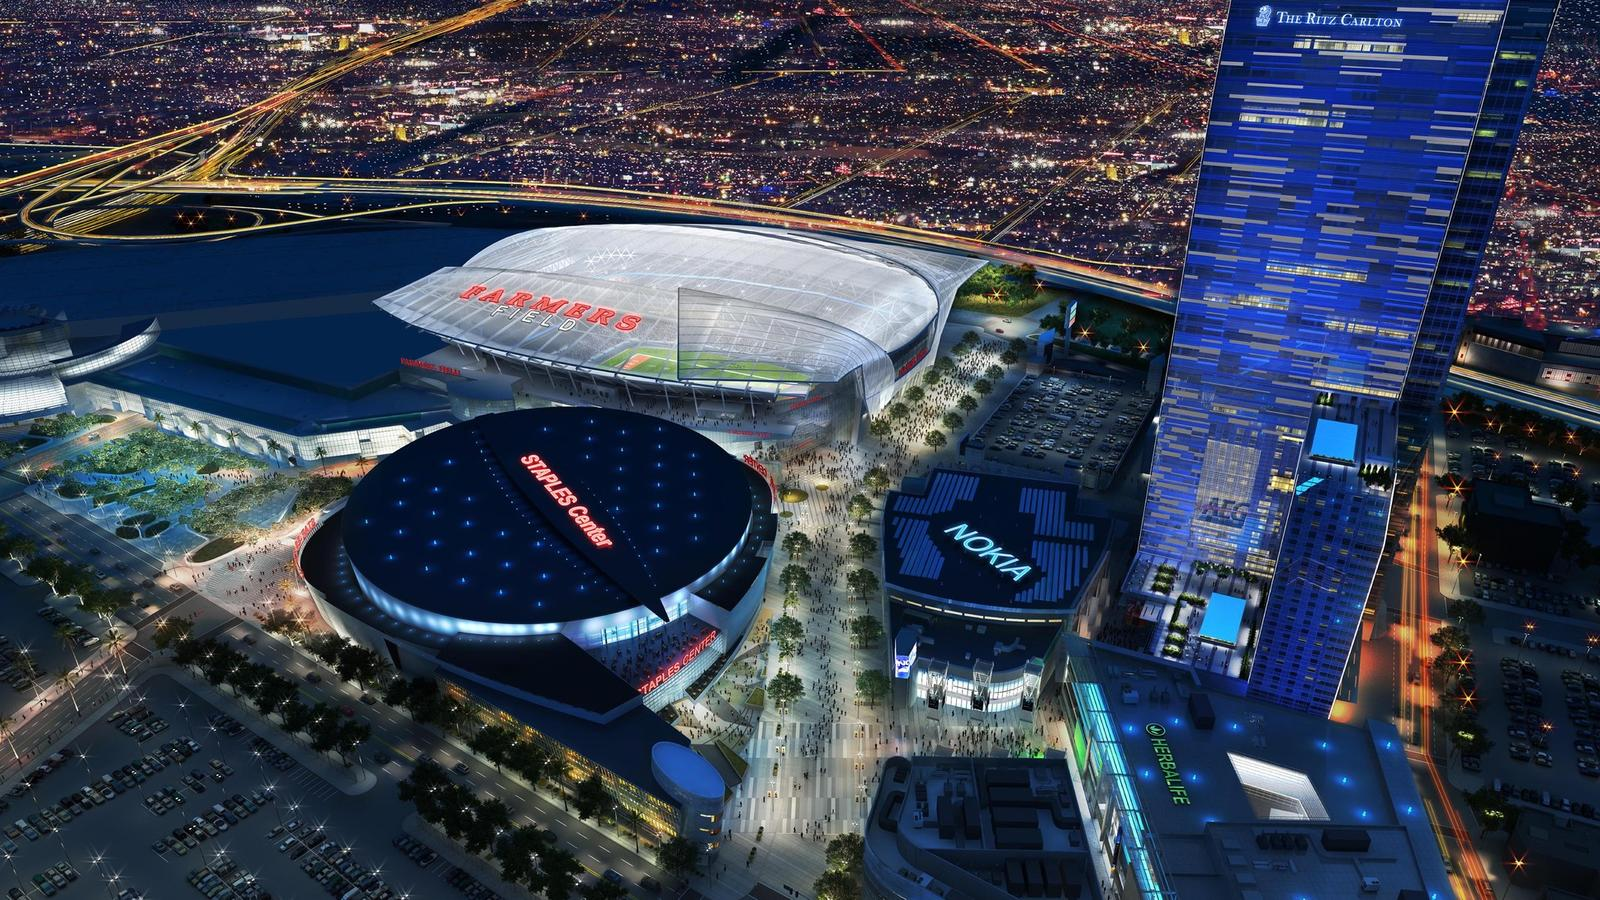 A rendering shows Farmers Field, an NFL stadium proposed by AEG for downtown adjacent to the L.A. Convention Center.